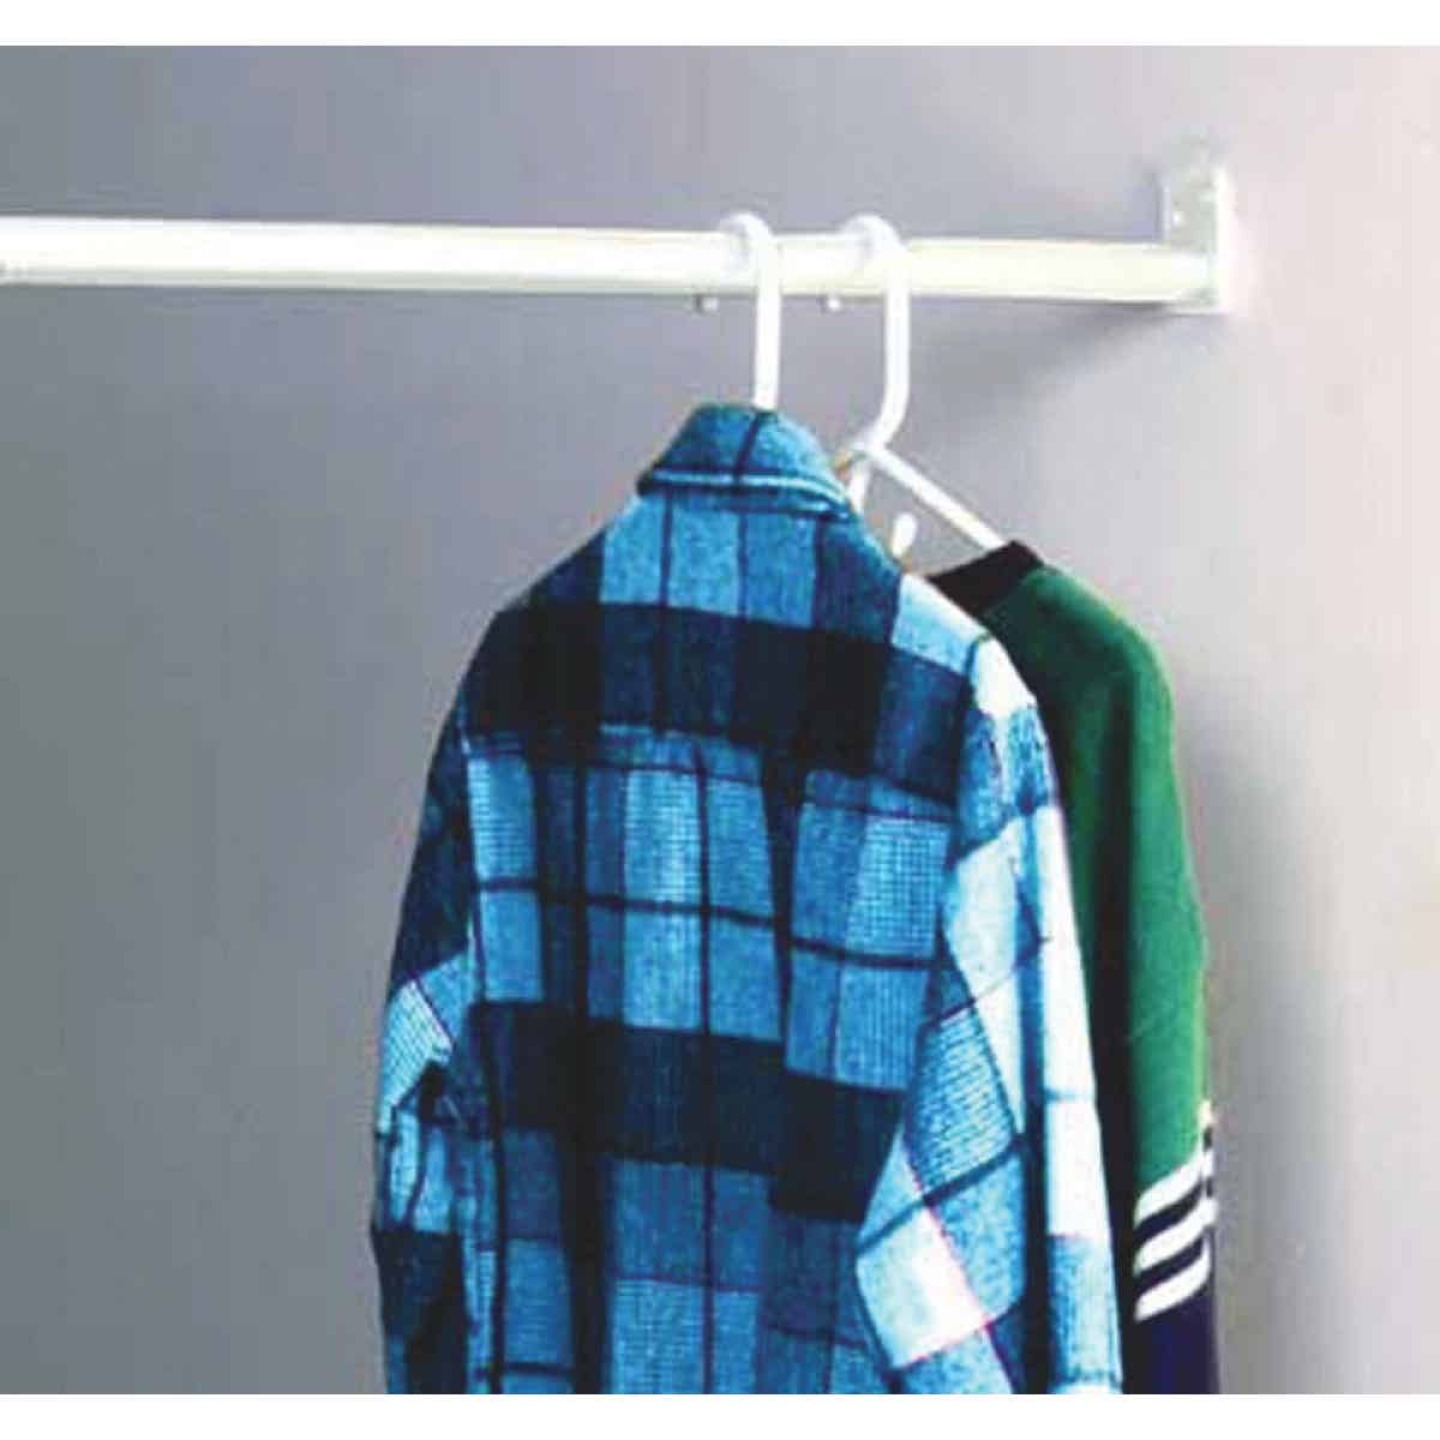 John Sterling Closet-Pro 72 In. to 120 In. x 1 In. Adjustable Closet Rod, White Image 1